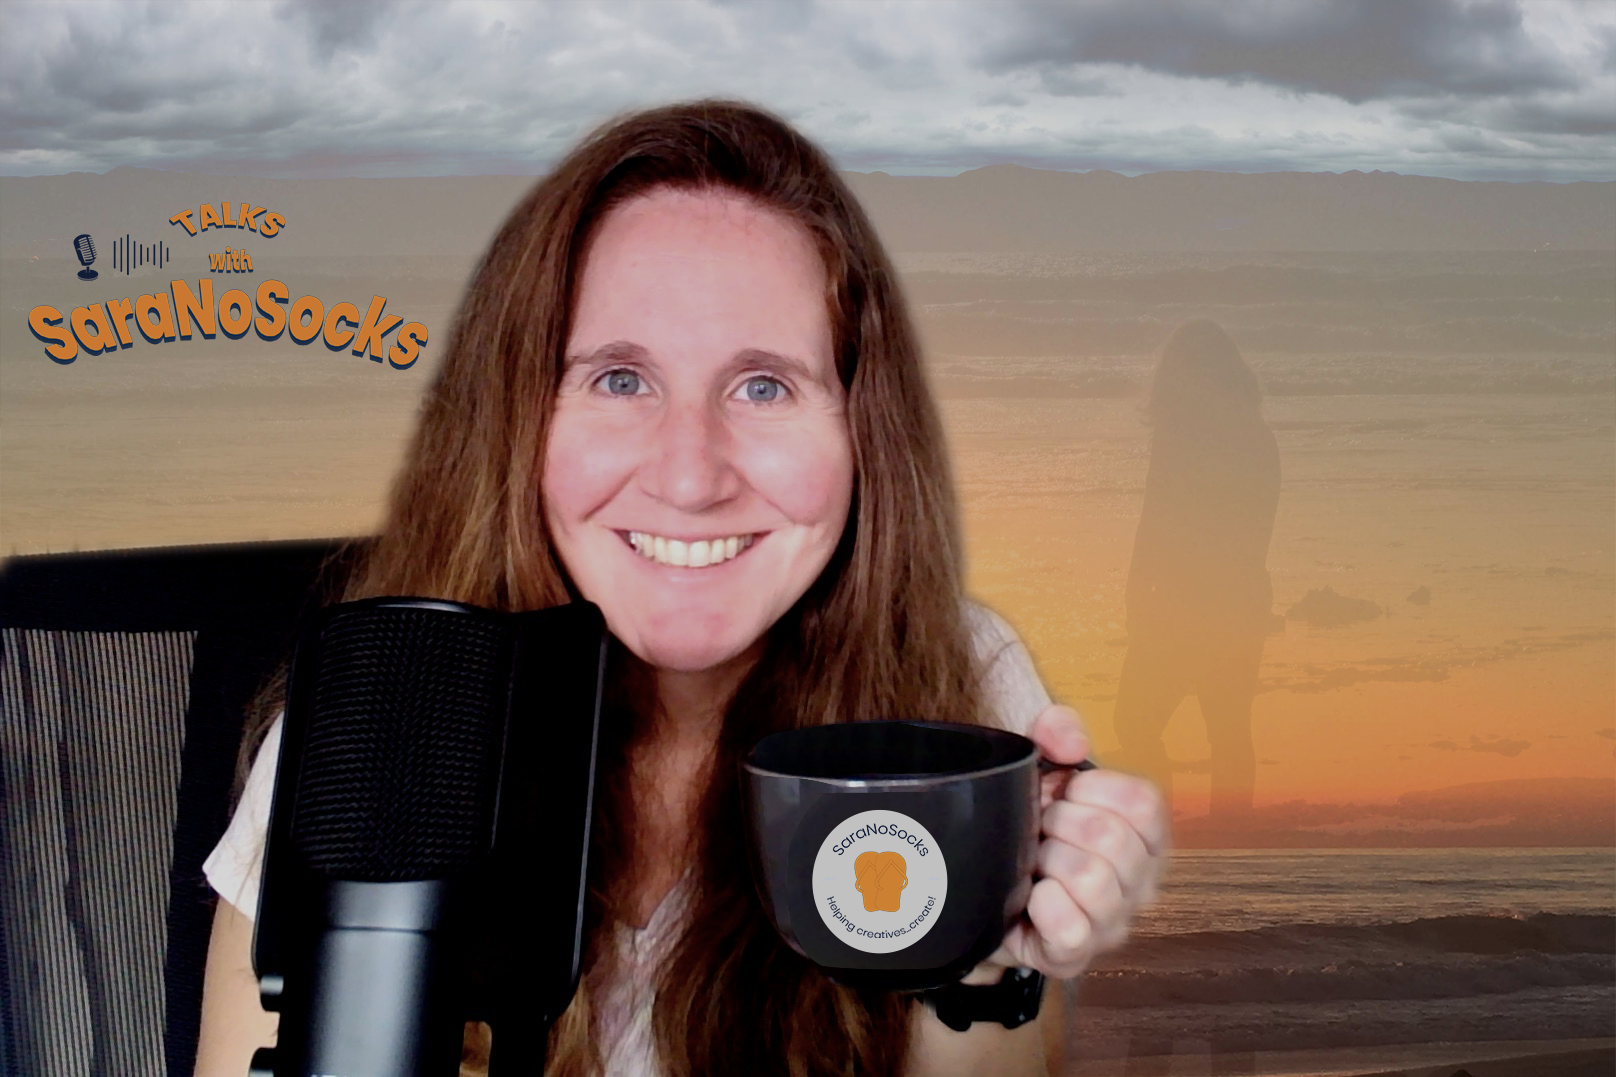 Photo of Sara with beach in background and microphone and coffee mug in foreground